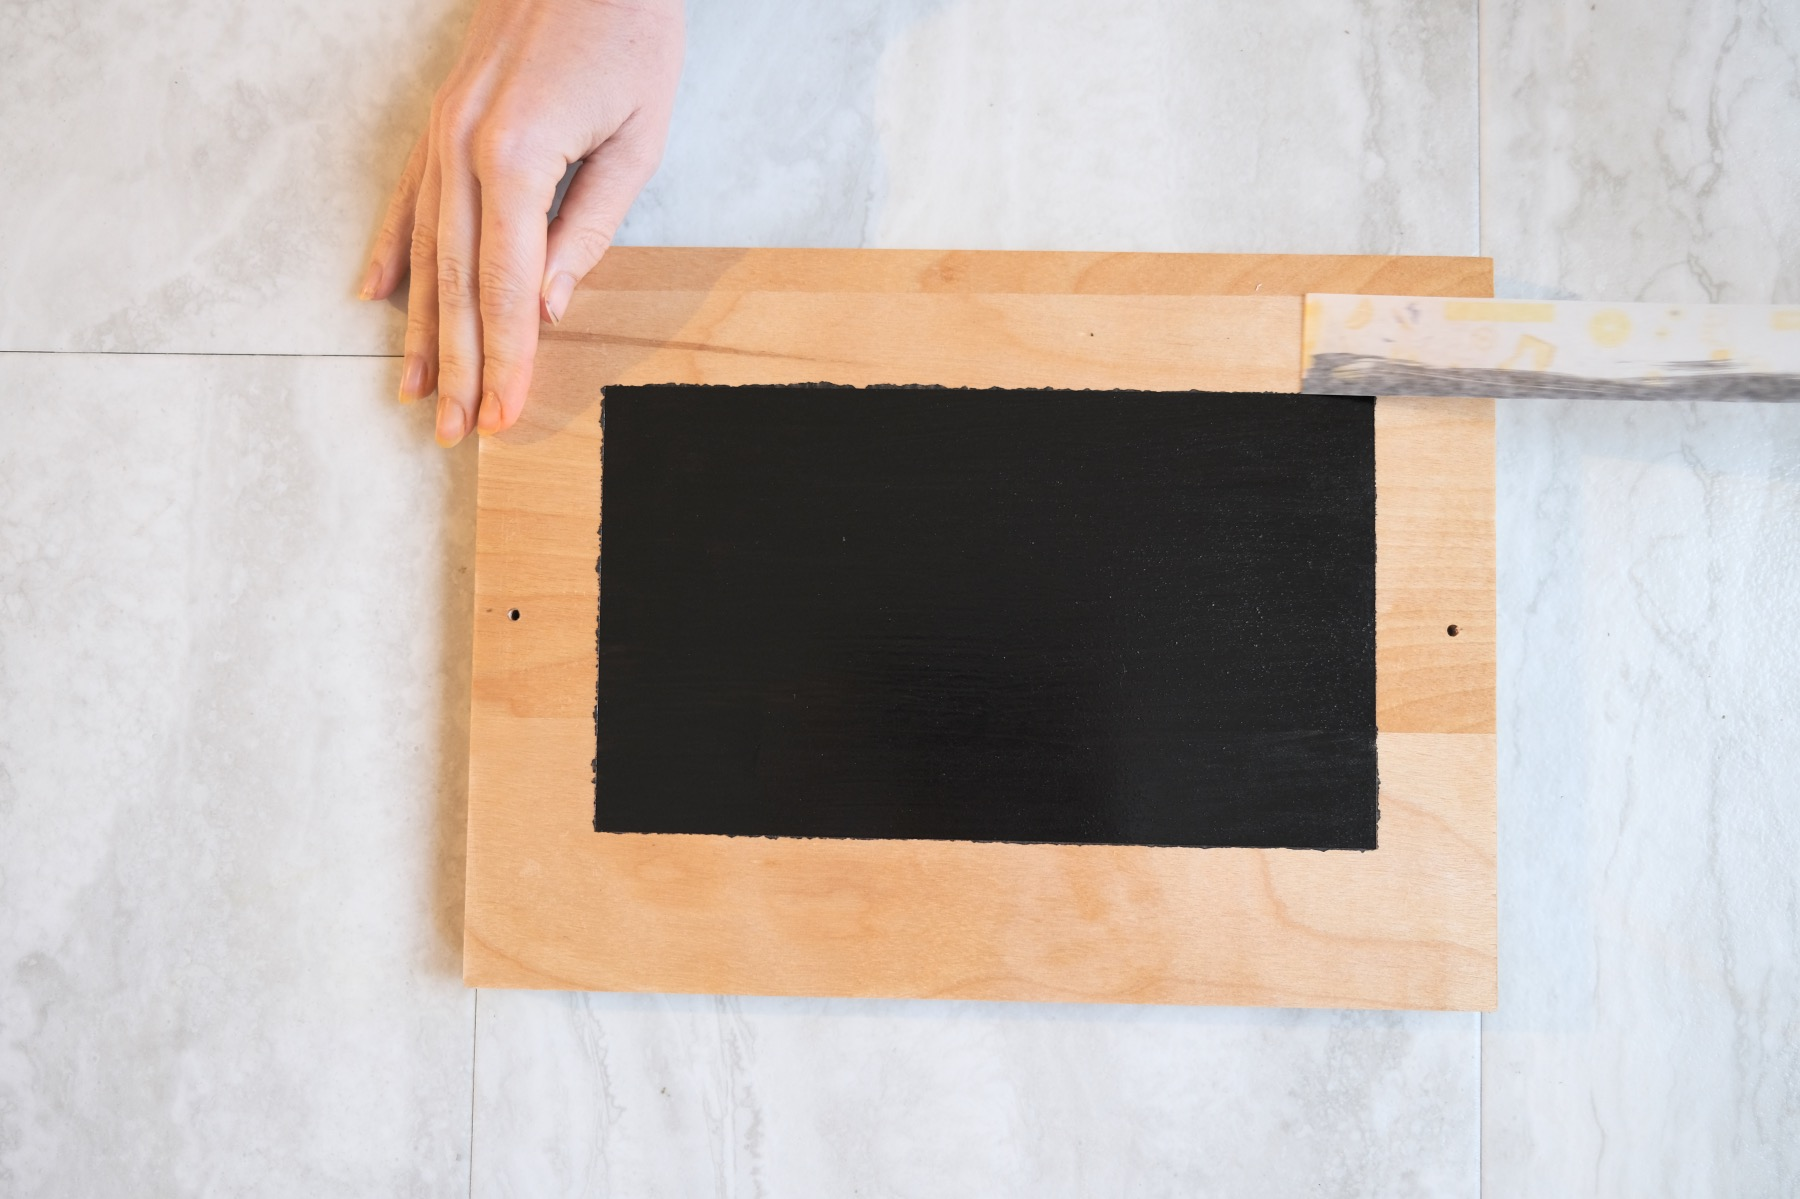 craft tutorial for chalkboard paint tray with tape removed